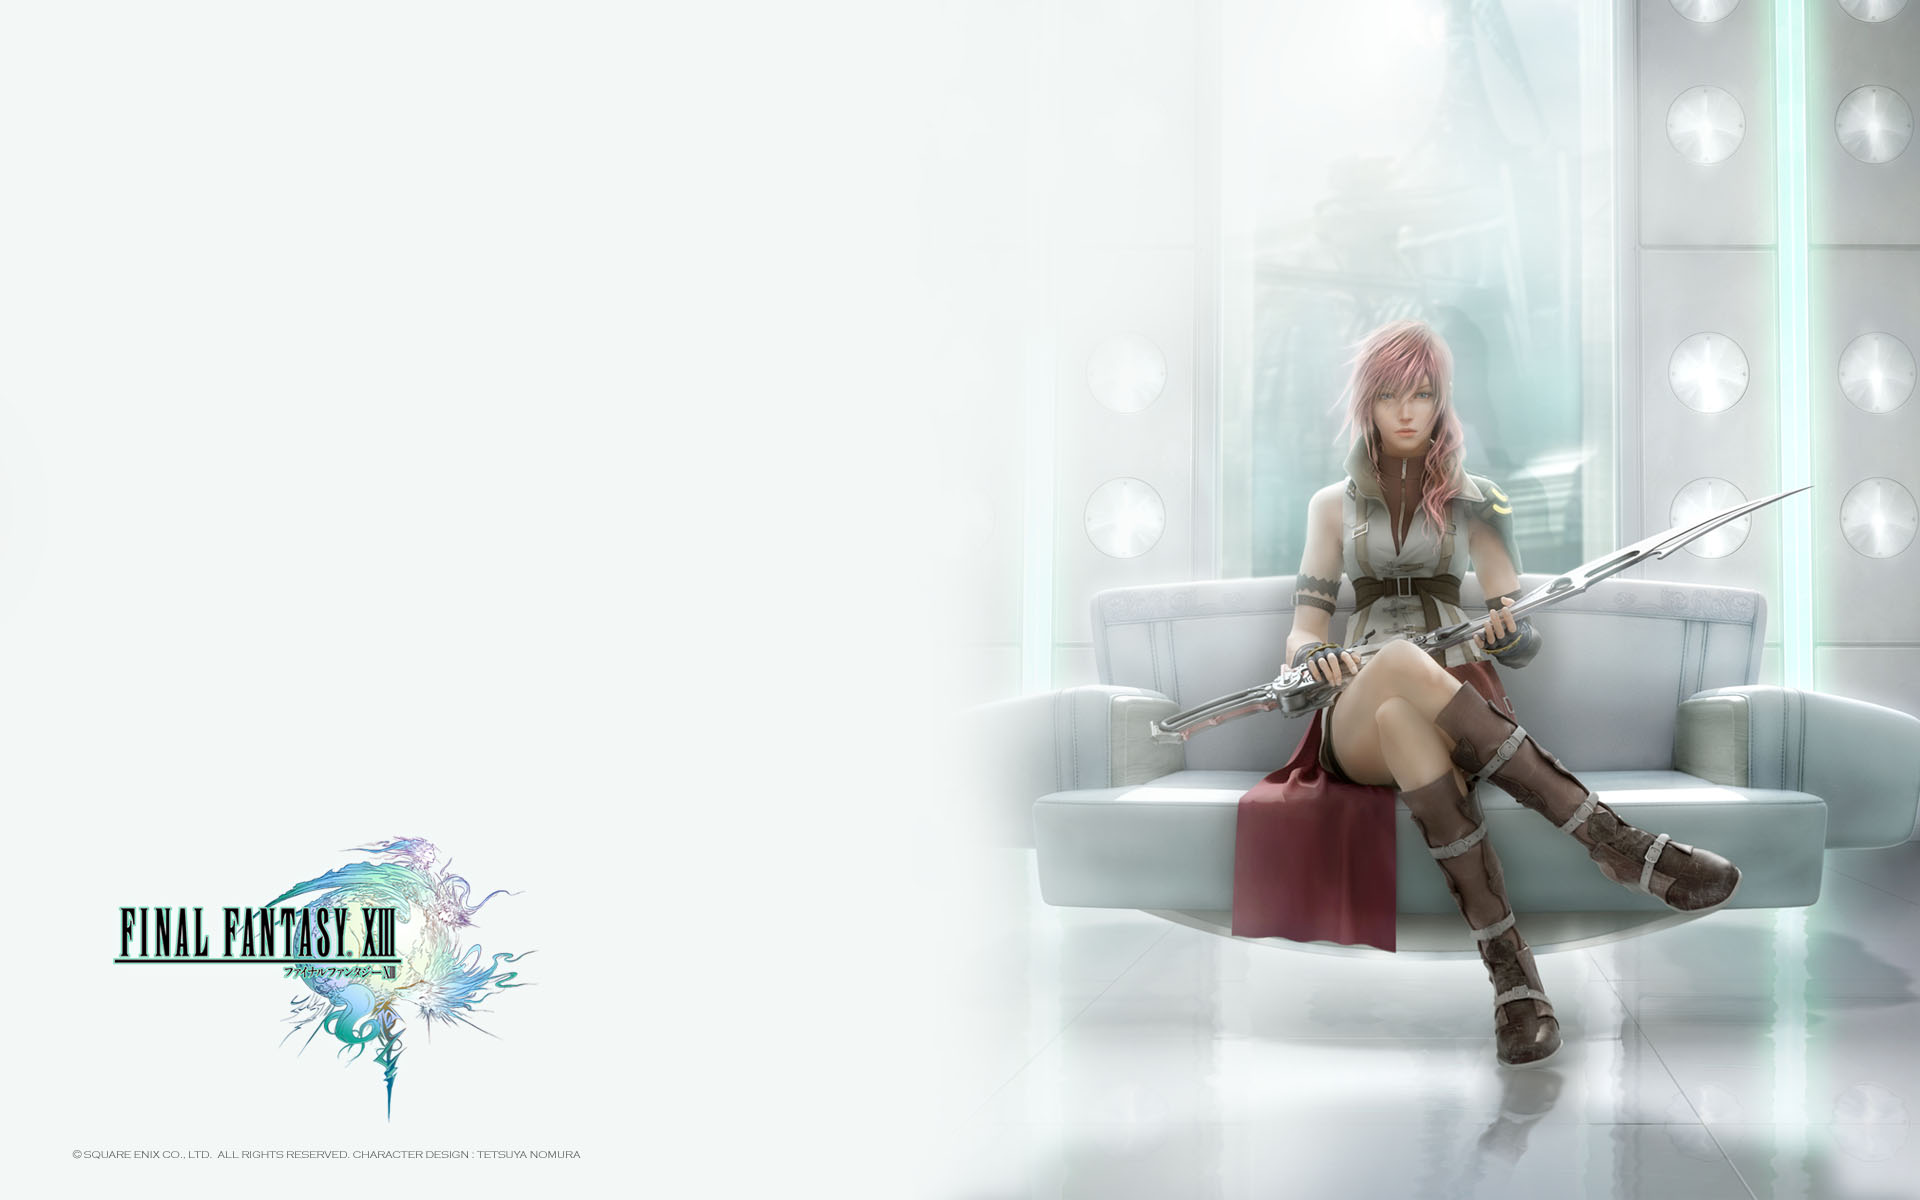 Categoryfinal fantasy xiii wallpapers final fantasy wiki categoryfinal fantasy xiii wallpapers final fantasy wiki fandom powered by wikia voltagebd Choice Image